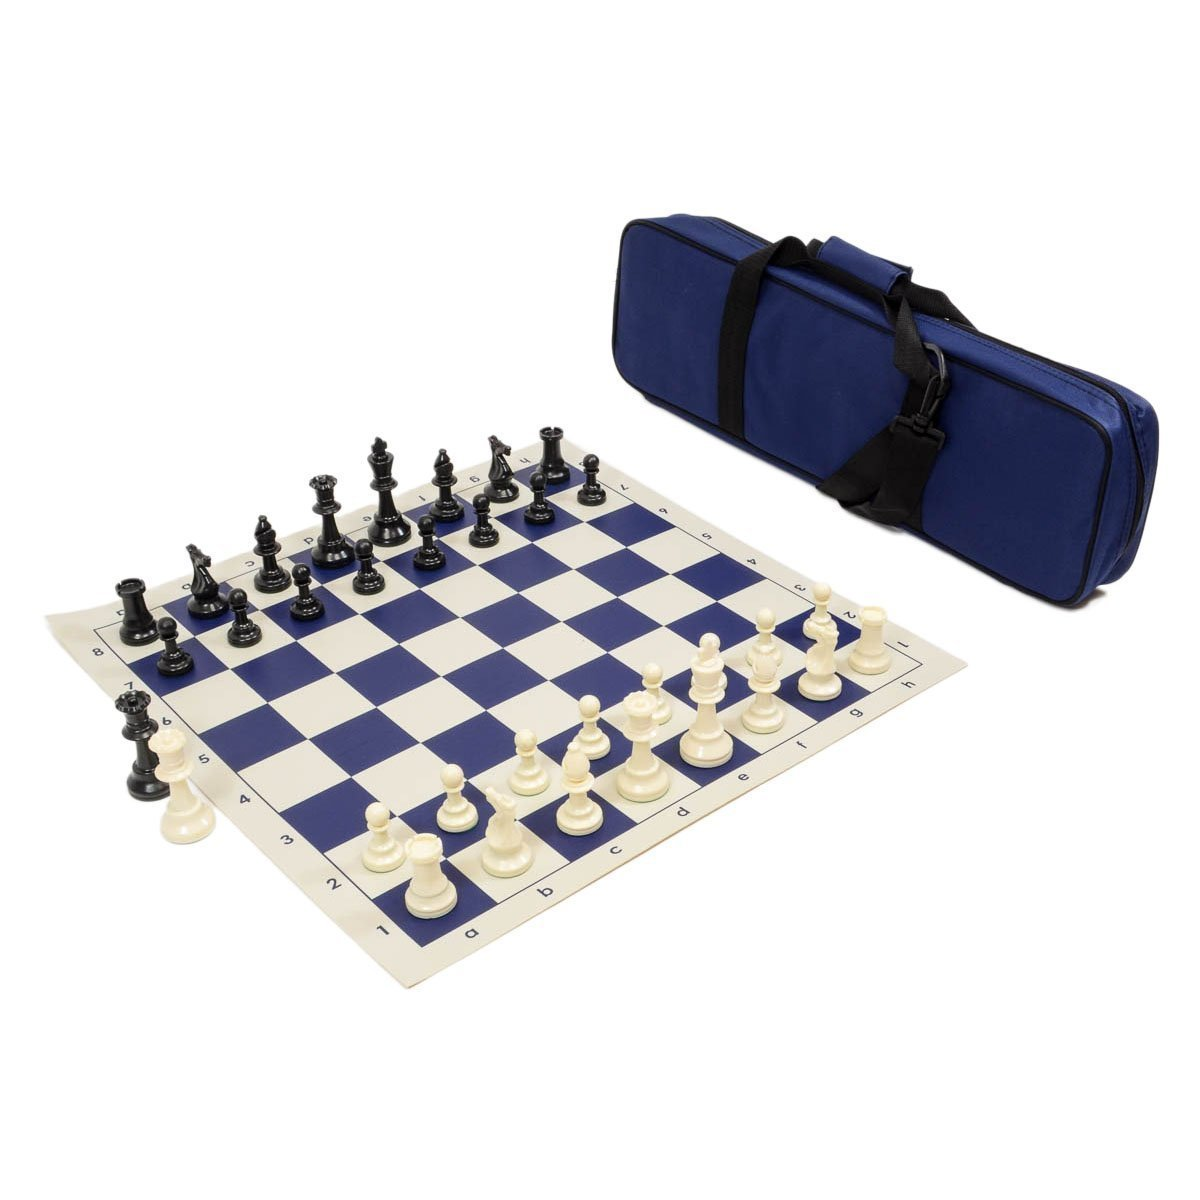 Heavy Tournament Triple Weighted Chess Set Combo - Navy Blue by Wholesale Chess